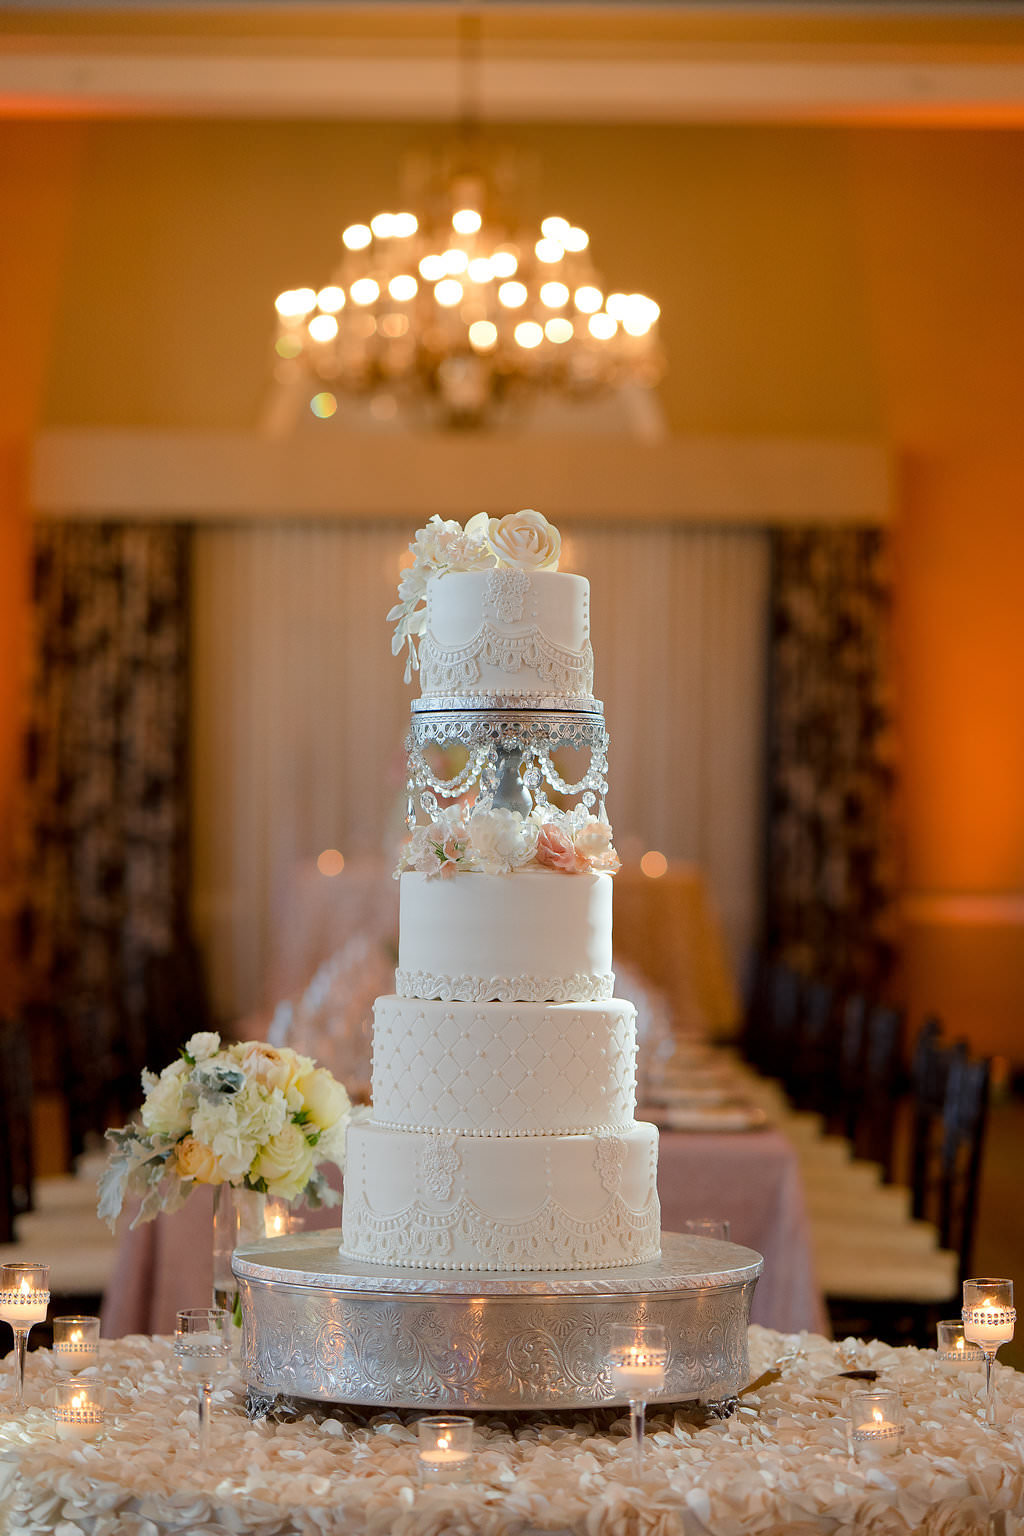 Four Tier Round White Wedding Cake with Silver Cake Stand and Blush PInk Roses on Textured Linen with Candles | Tampa Bay Textured Wedding Linen Rentals Kate Ryan Linens | Hotel Ballroom Reception Venue The Don CeSar